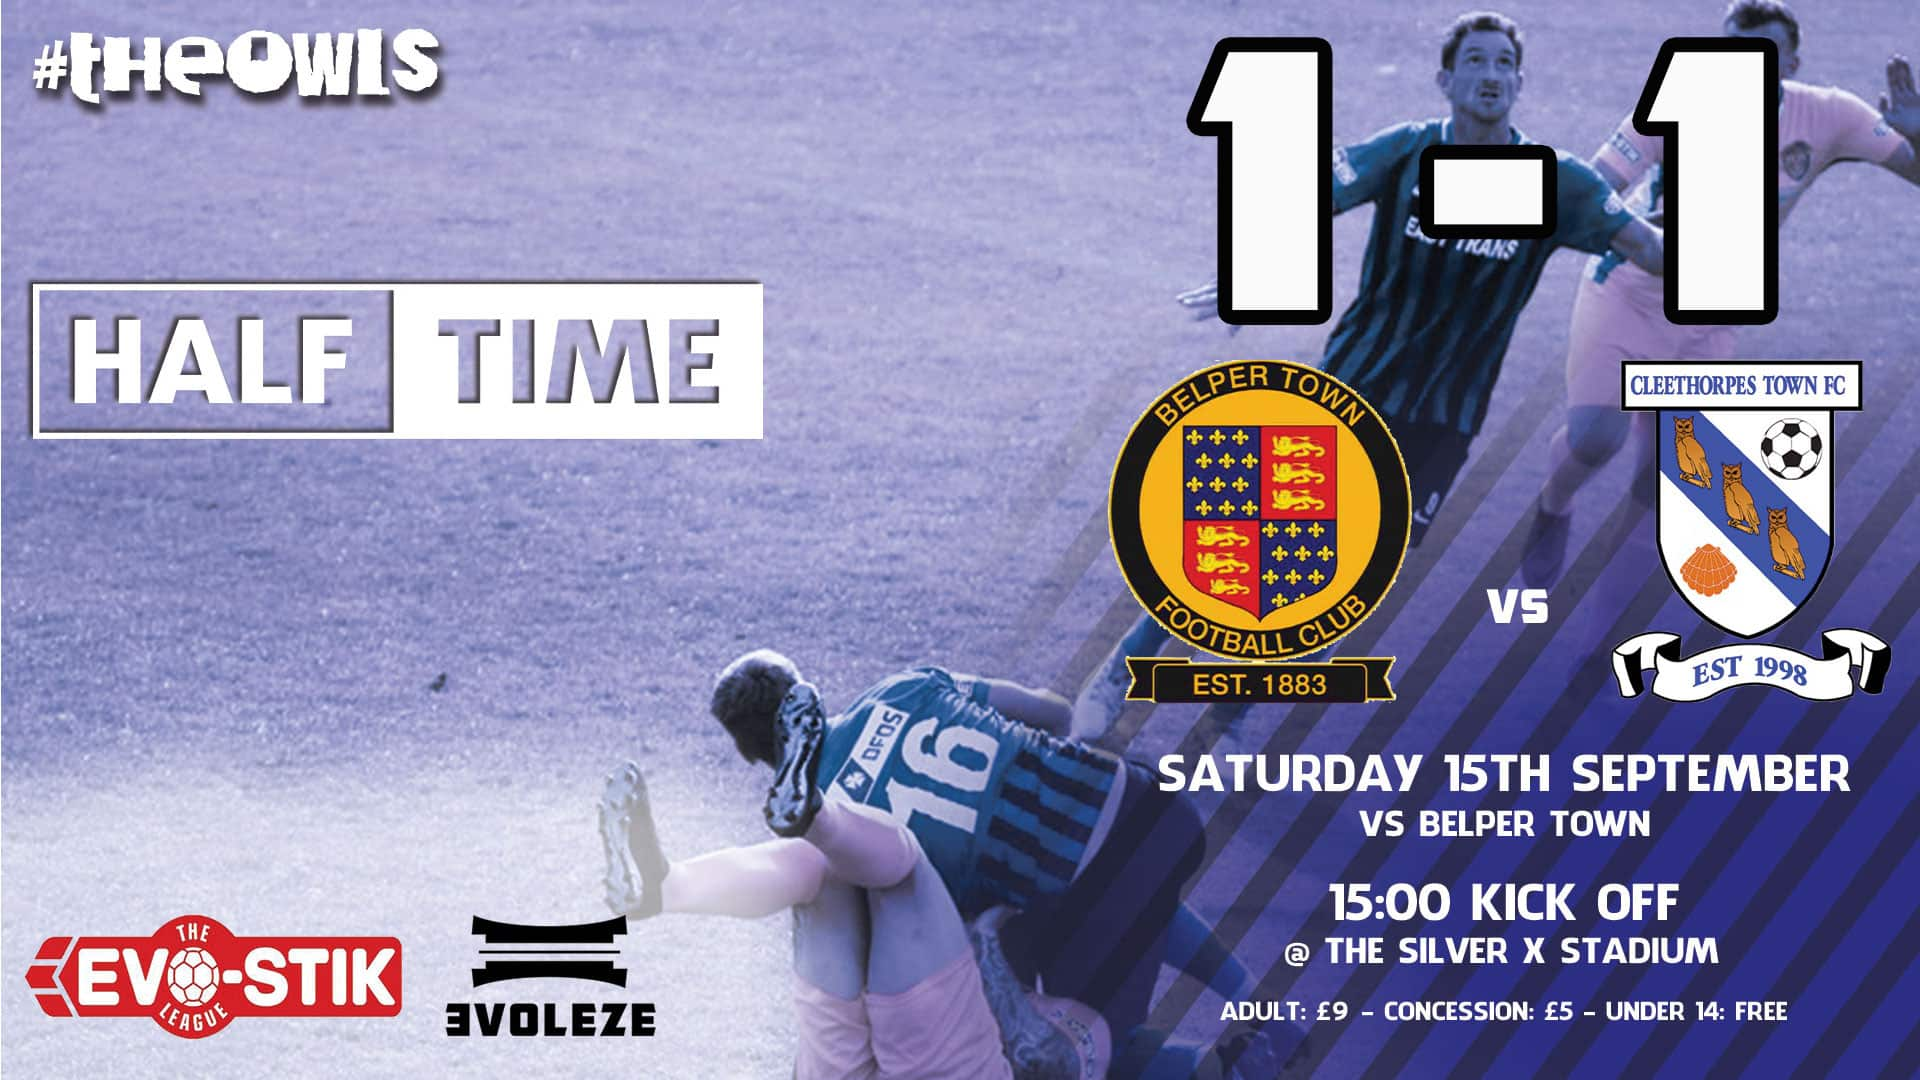 half time - Cleethorpes Town FC